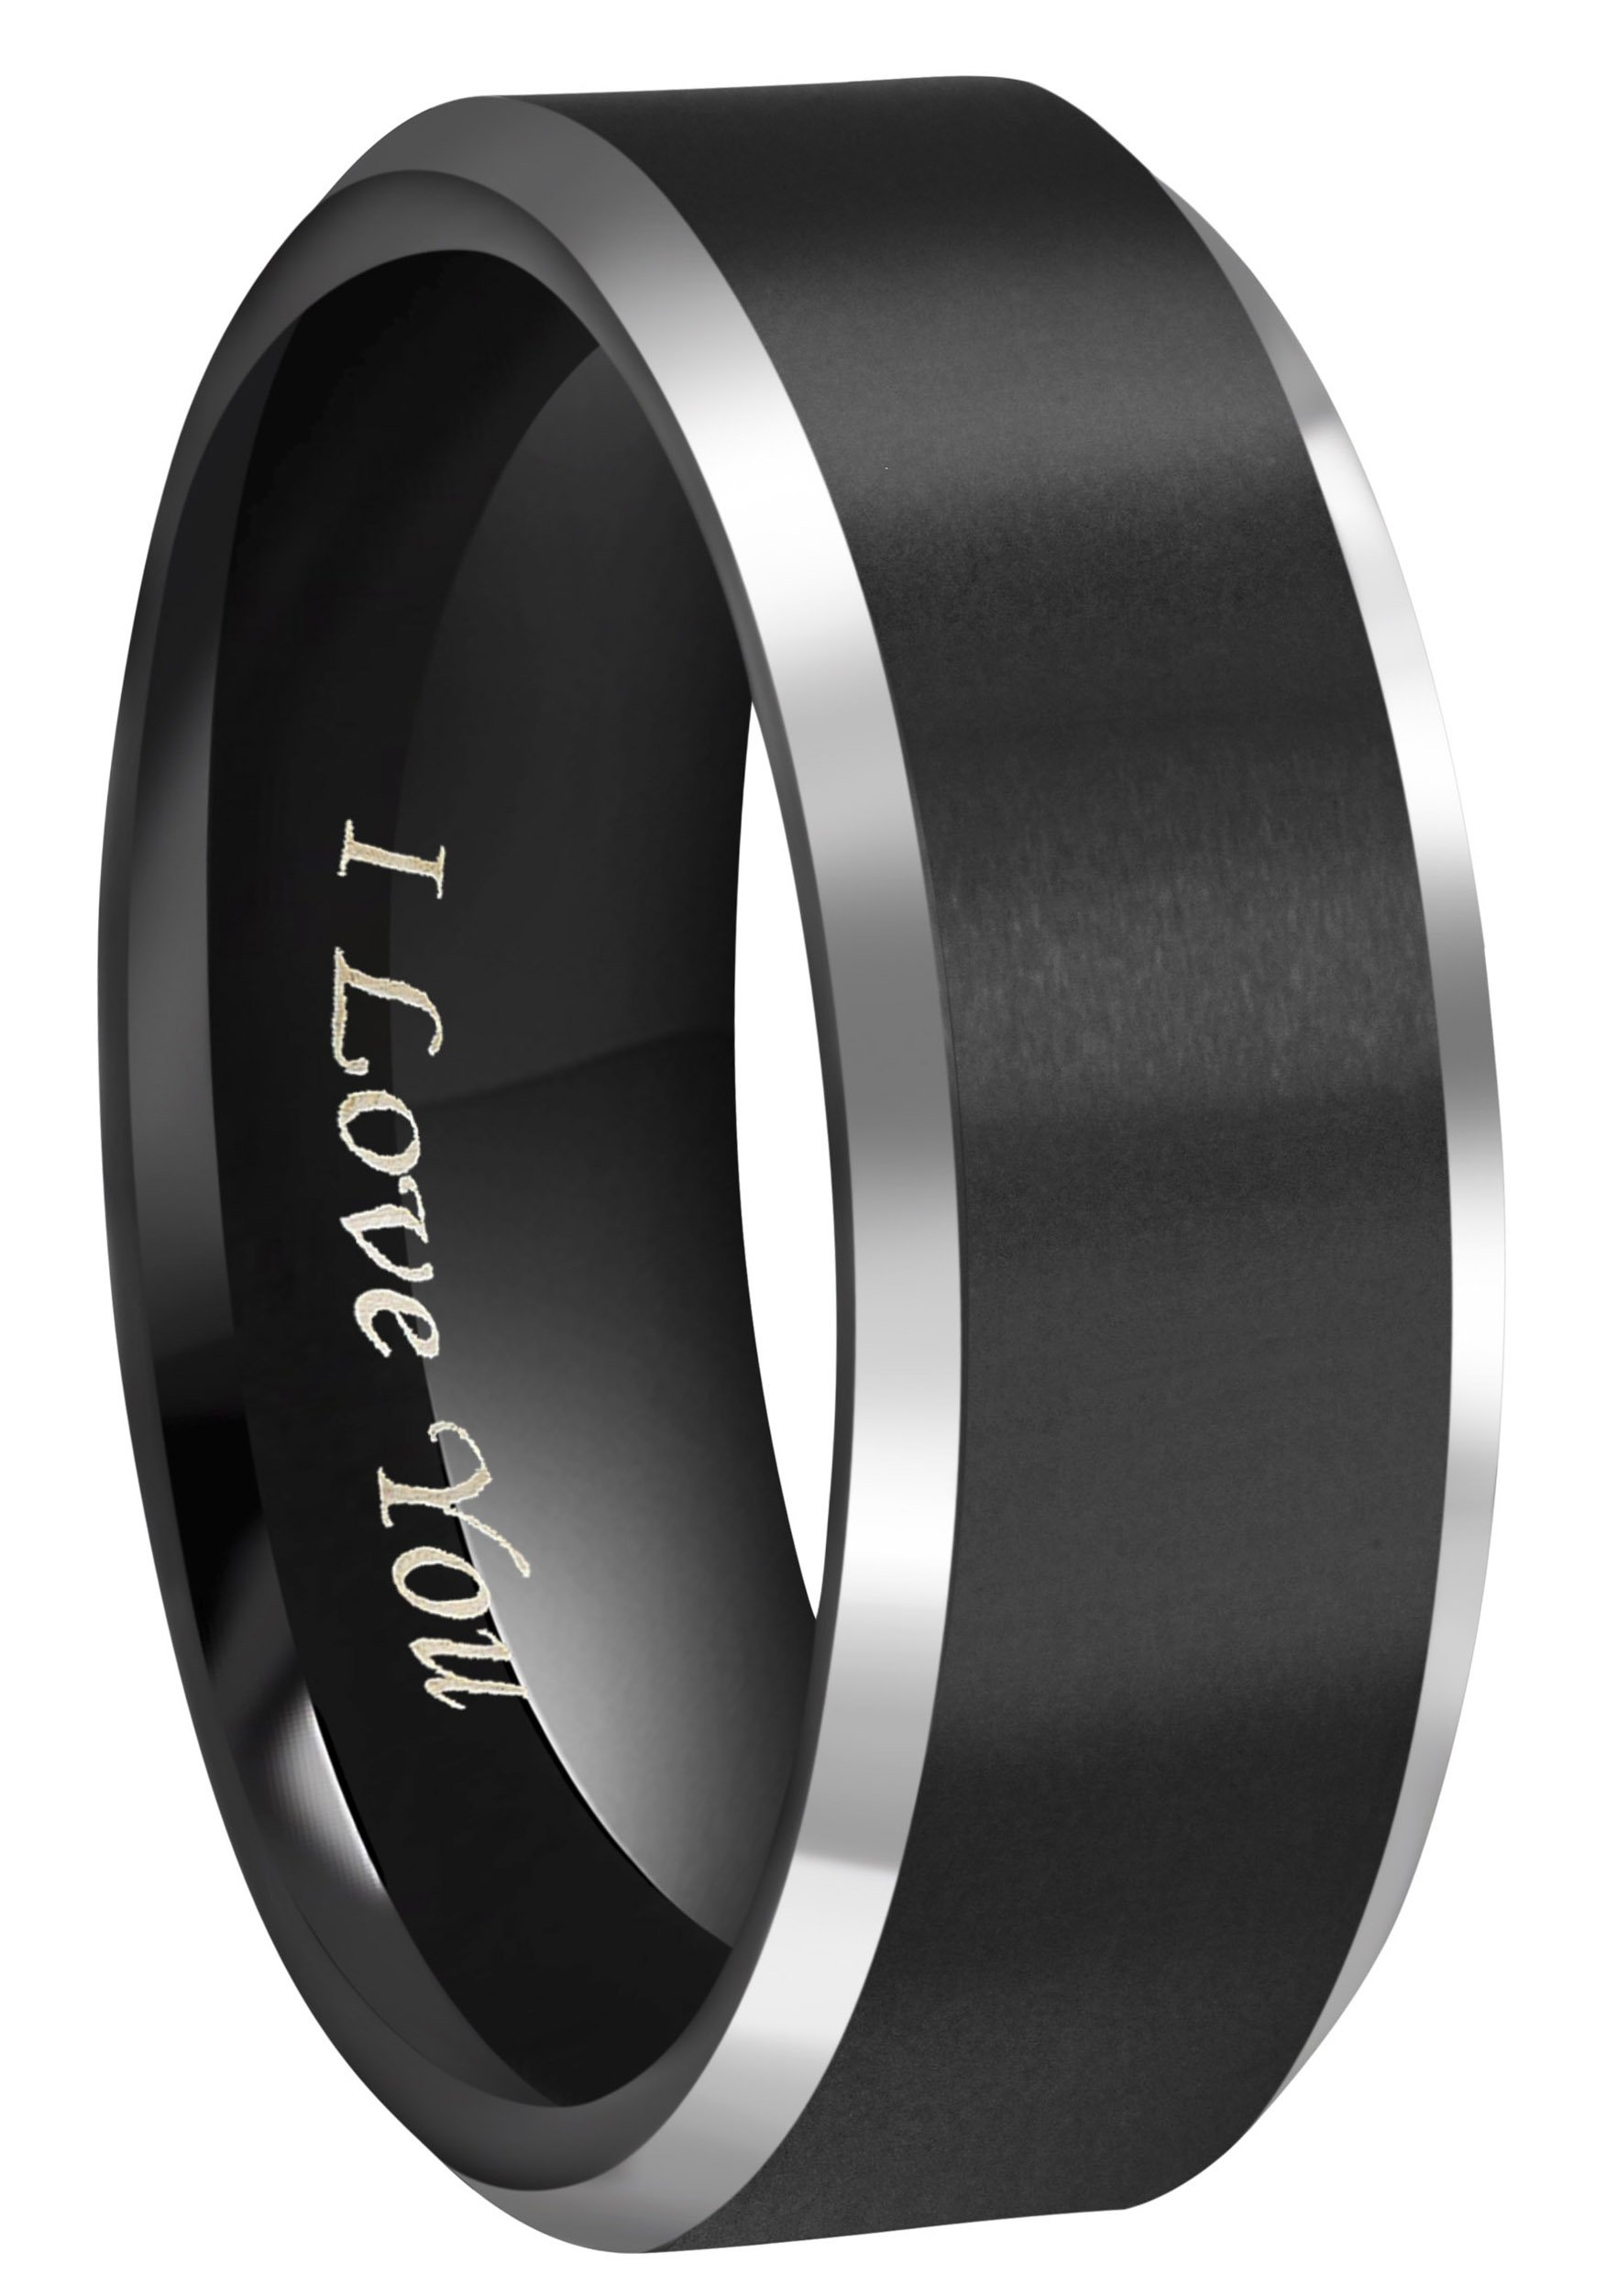 CROWNAL 8mm Black Tungsten Couple Wedding Bands Rings Men Women Polished Beveled Edges Matte Brushed Finish Engraved I Love You Size 3.5 To 17 (8mm,16)